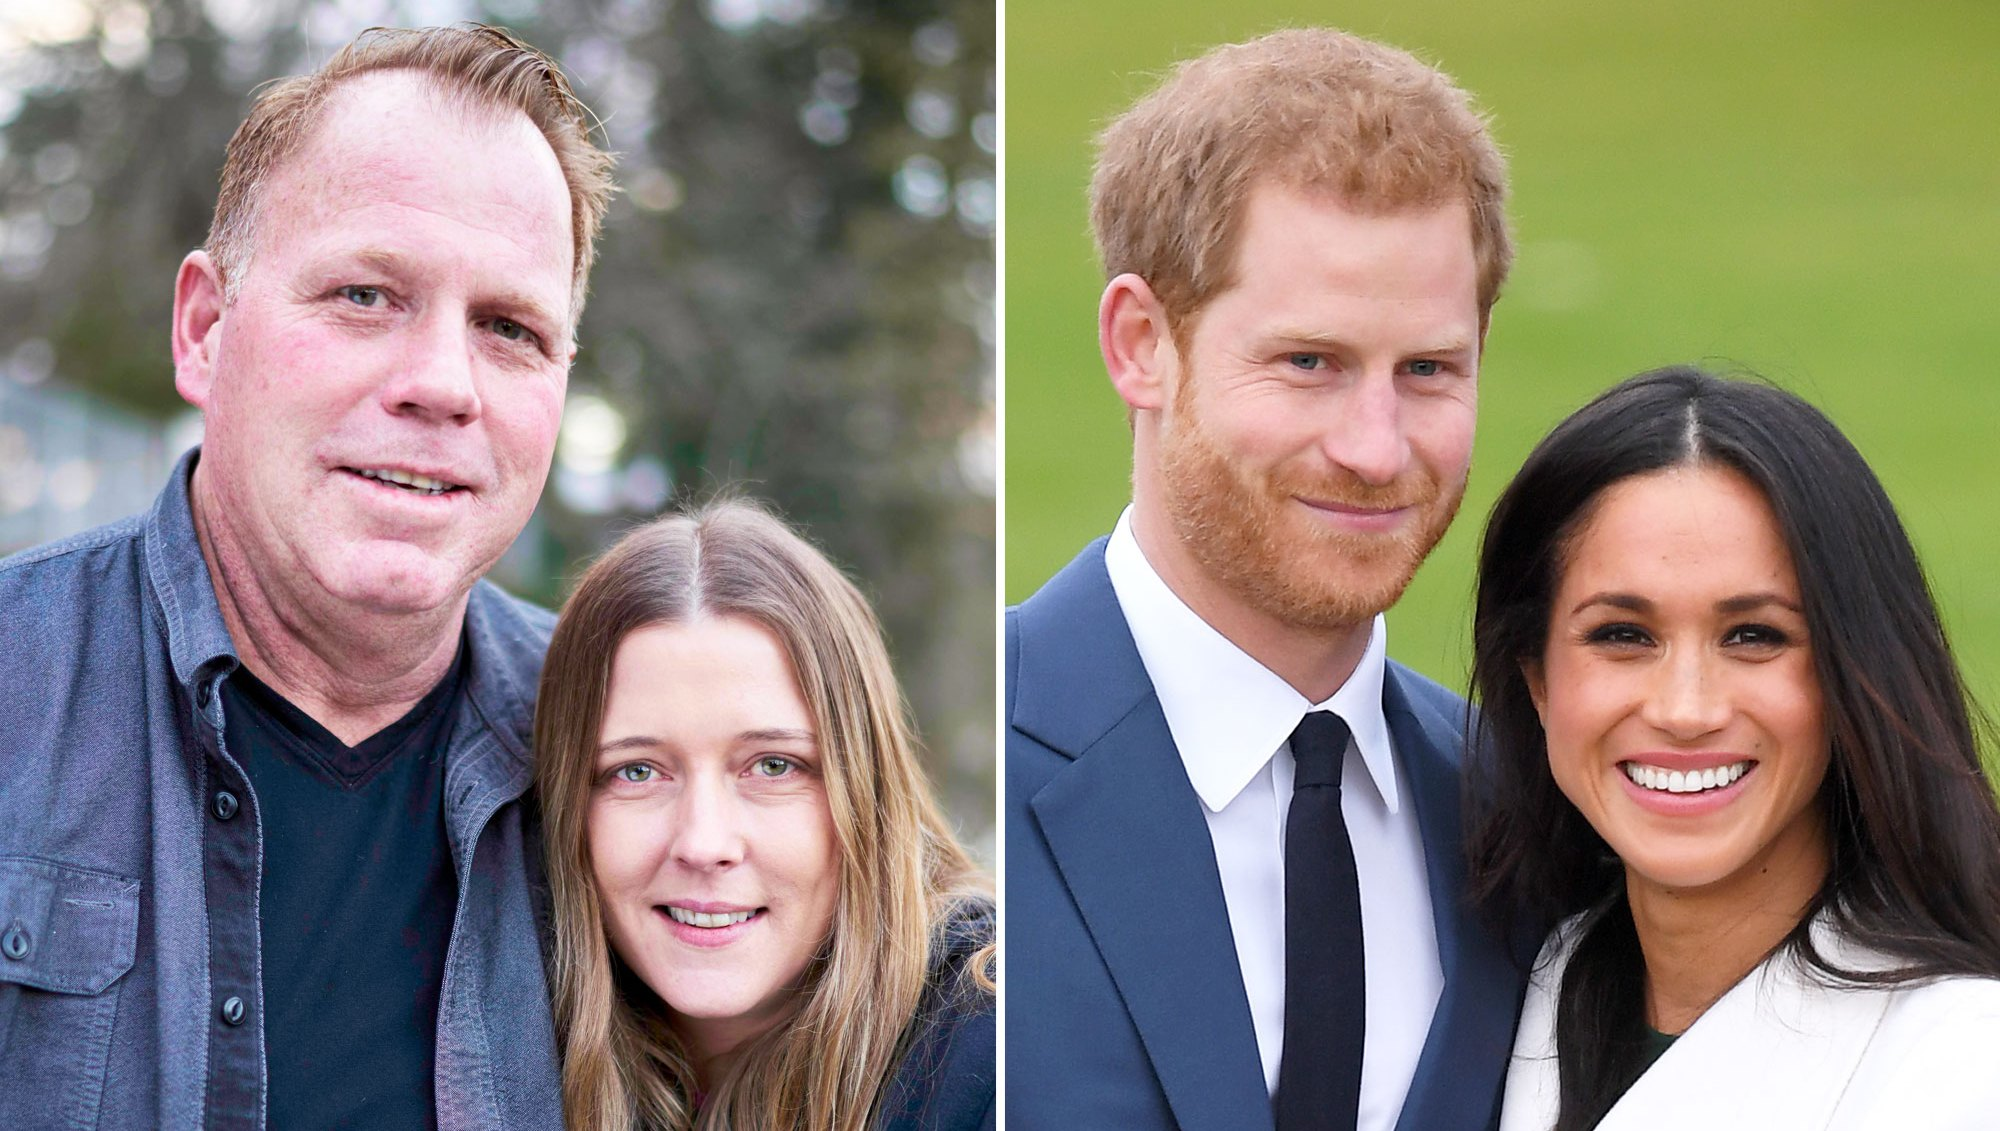 Meghan Markle and Prince Harry Darlene Blount Duchess Meghan's Estranged Half-Brother Thomas Markle Jr. Is Engaged, Wants Her and Prince Harry to Come to His Wedding